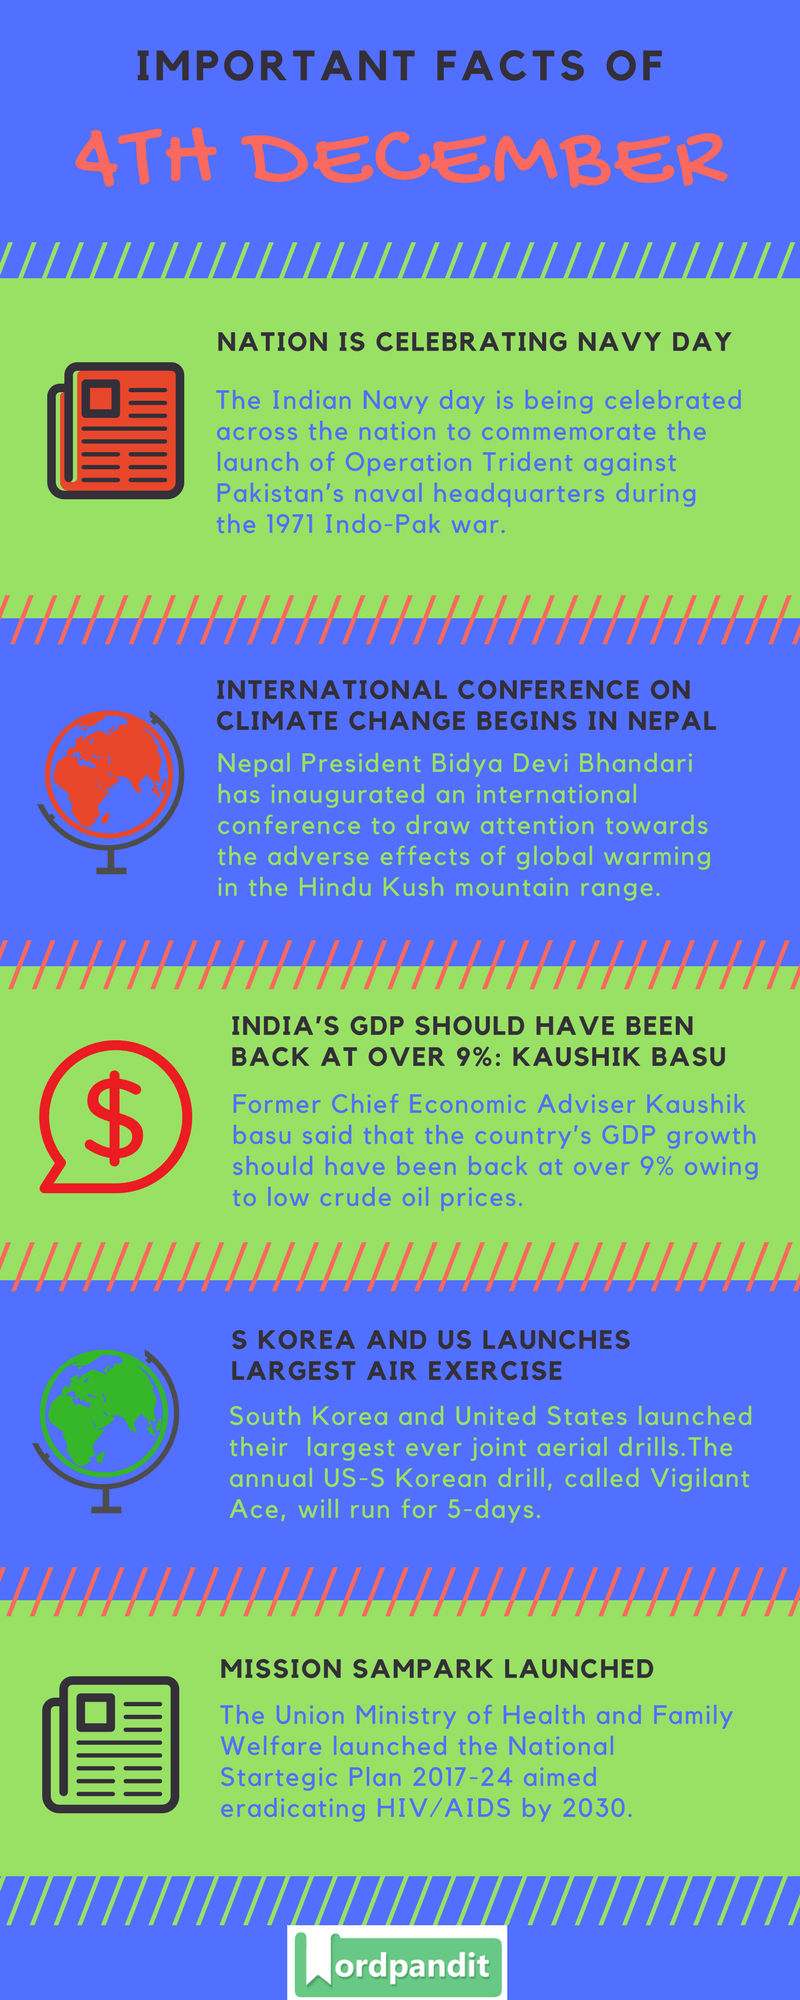 Daily-Current-Affairs-4-december-2017-Current-Affairs-Quiz-december-4-2017-Current-Affairs-Infographic